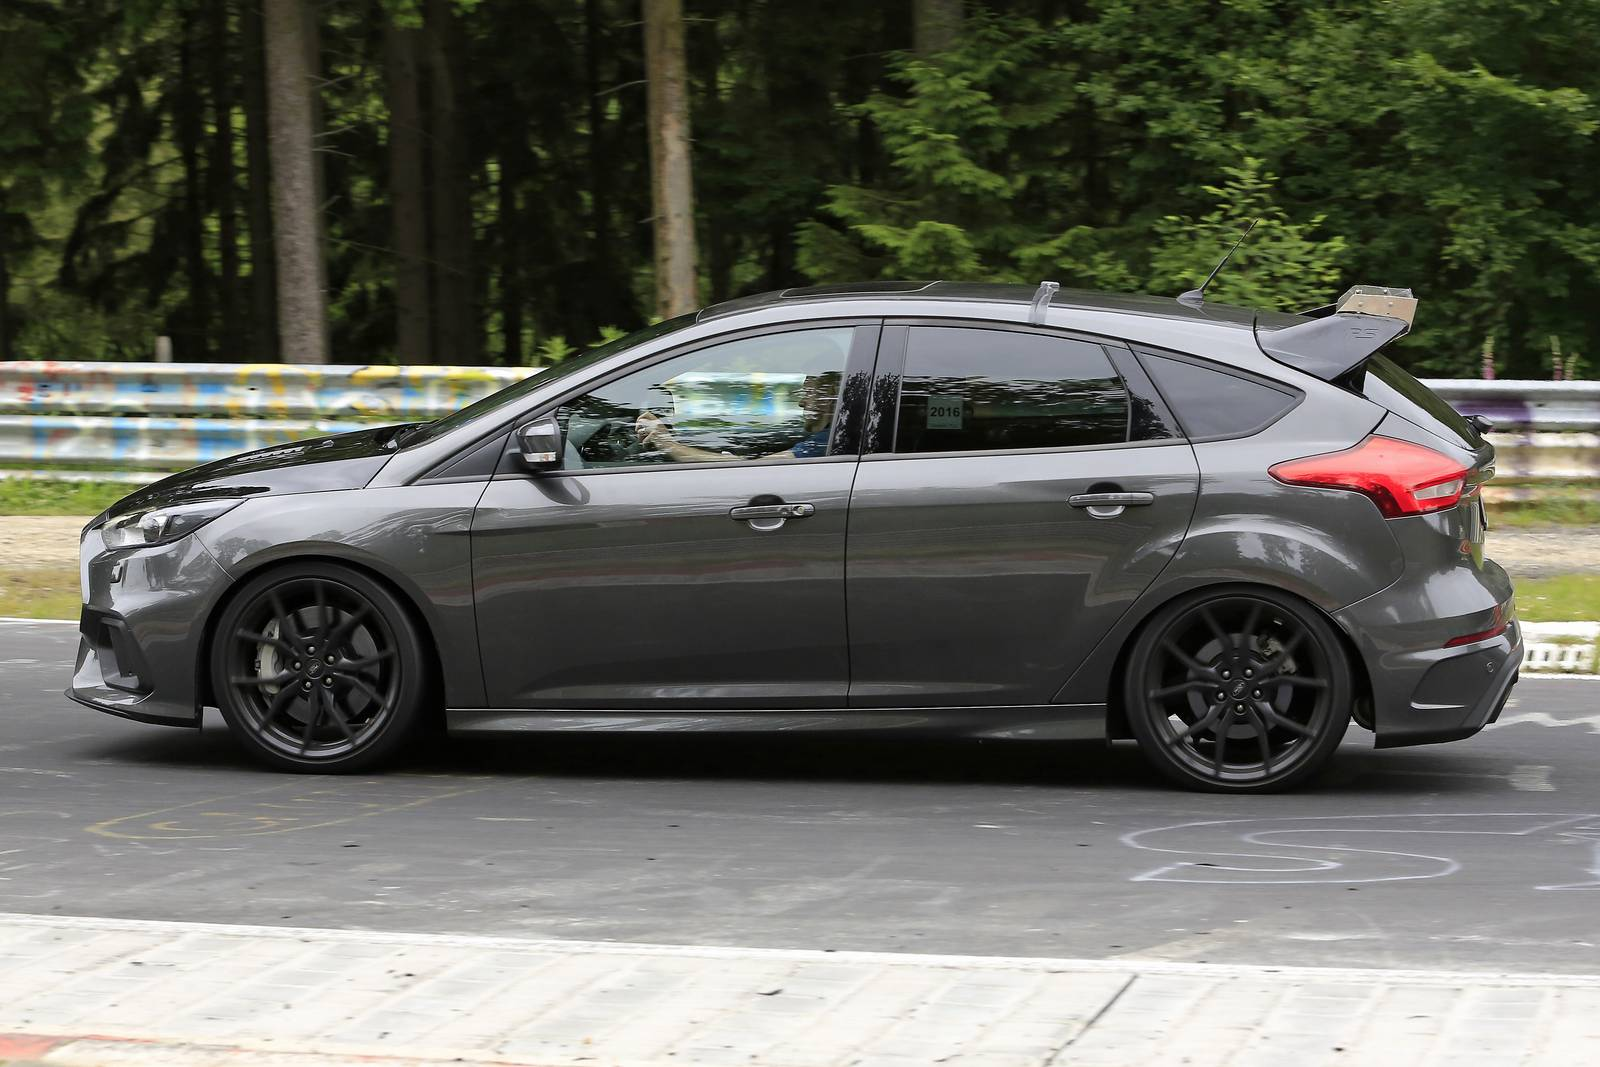 Ford Focus Rs Hp >> An Even More Hardcore Ford Focus RS500 - Latest Spy Shots - GTspirit